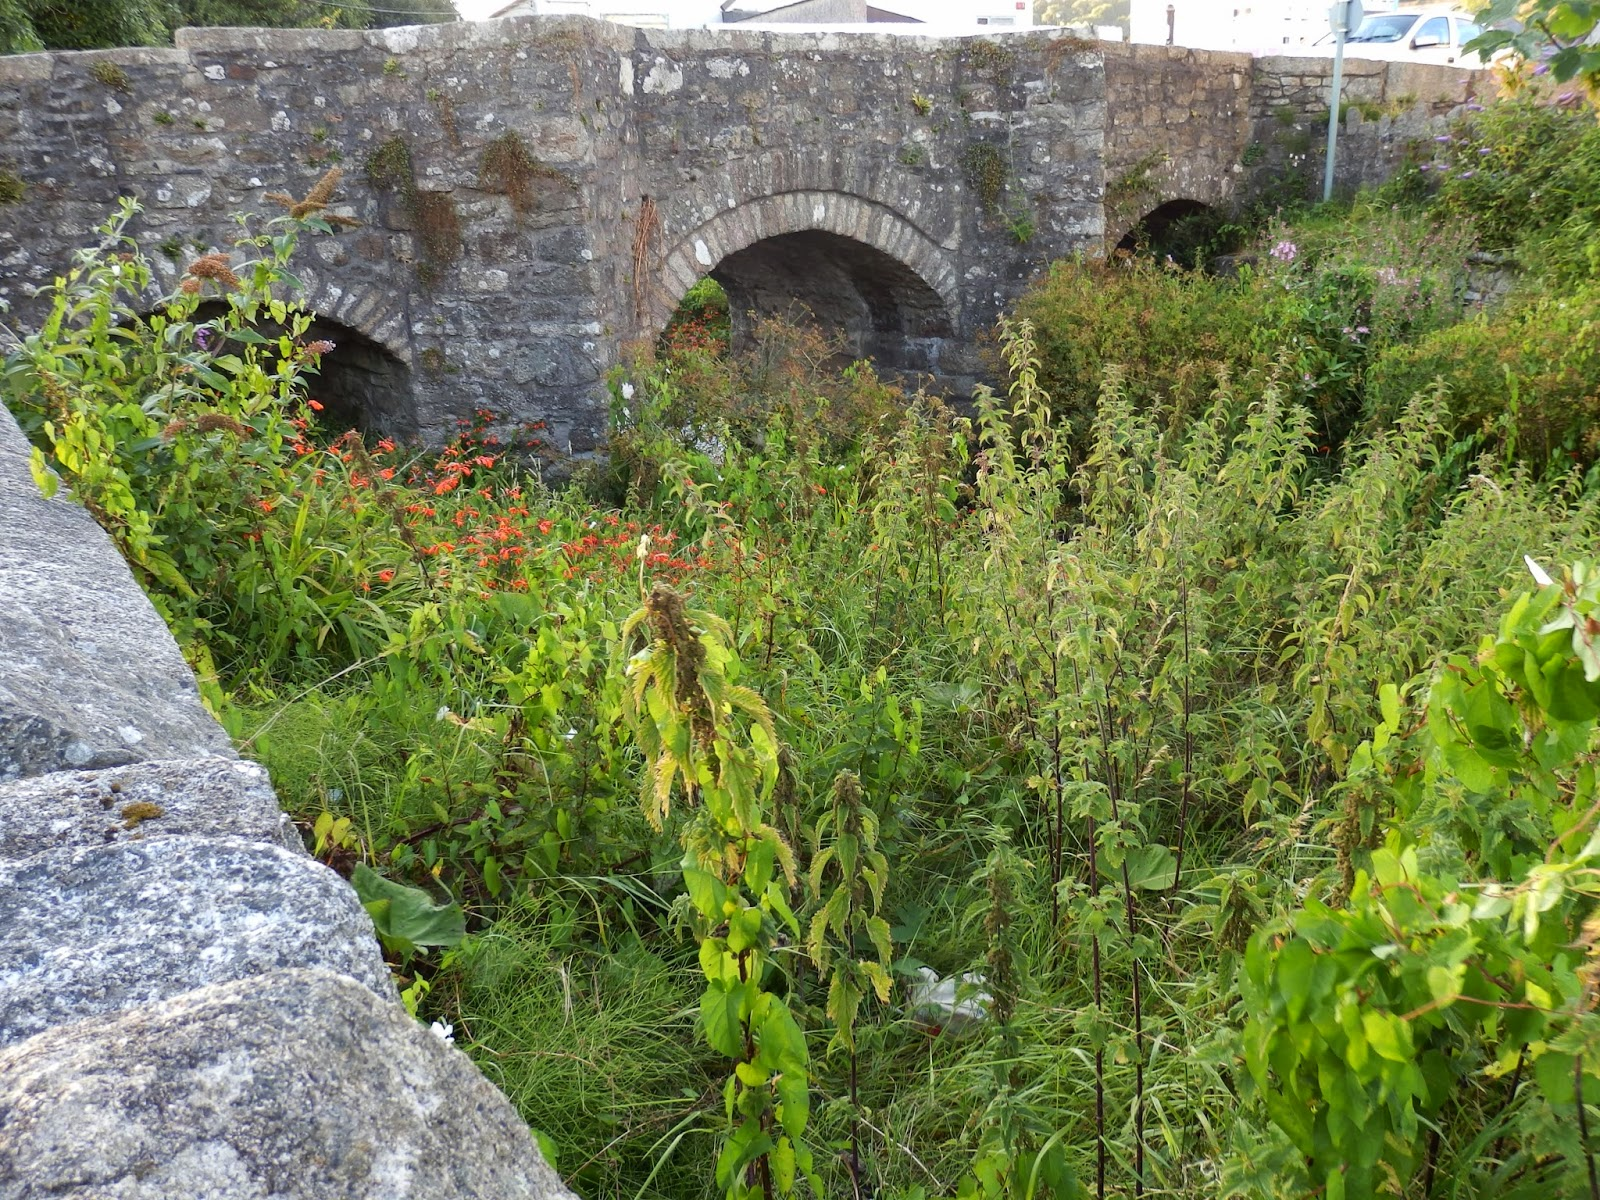 St.Austell bridge over River Vinnick, Cornwall